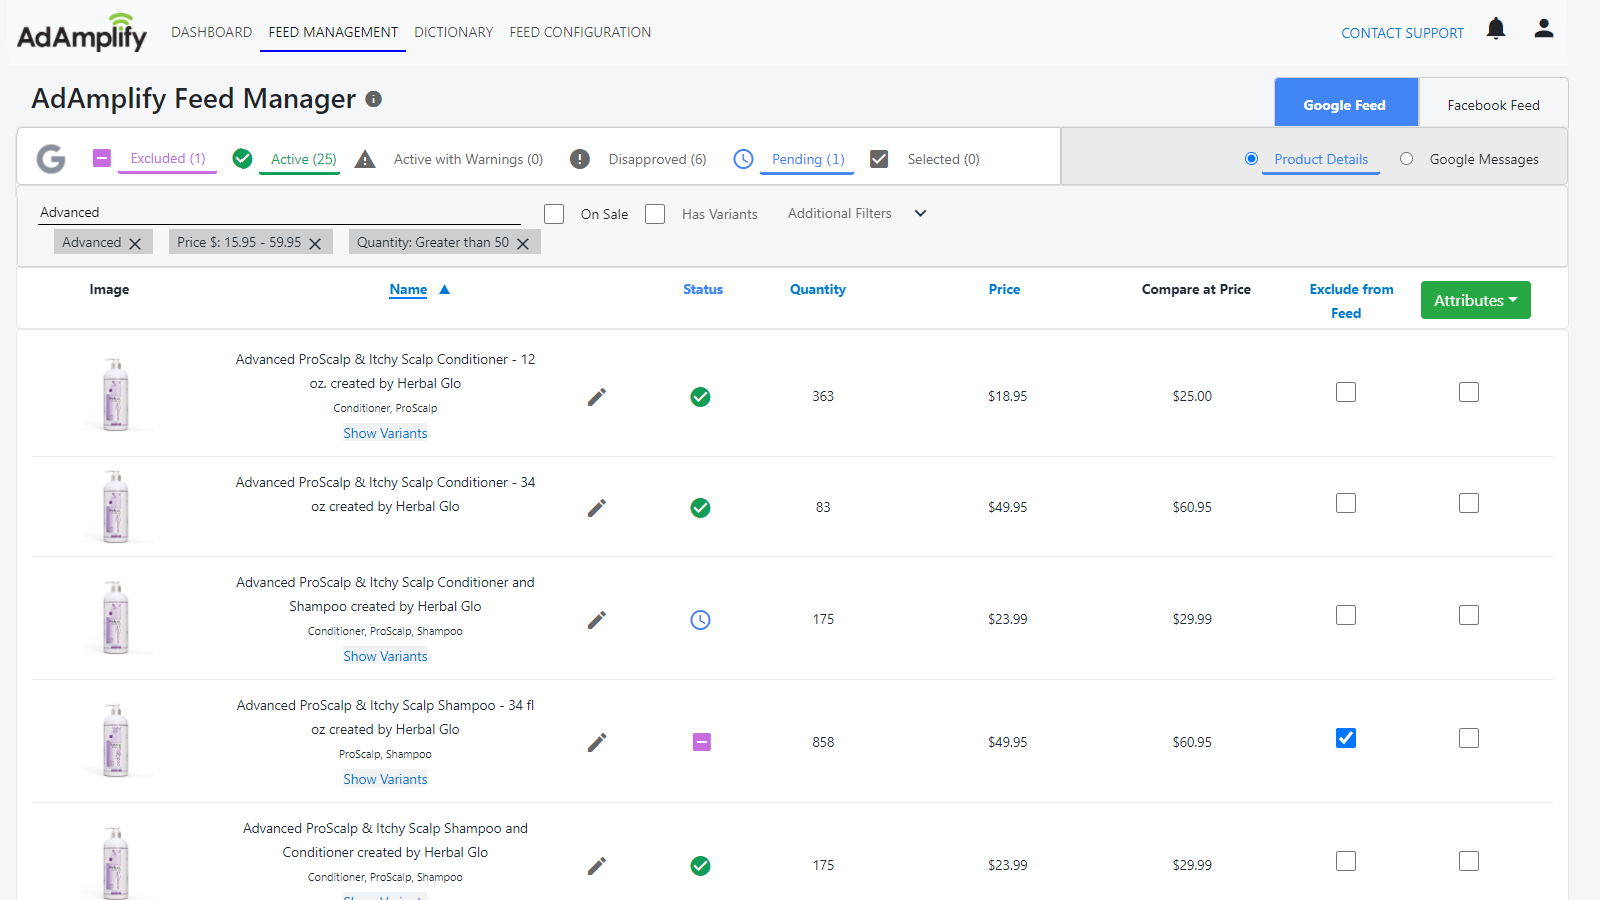 AdAmplify Feed Manager